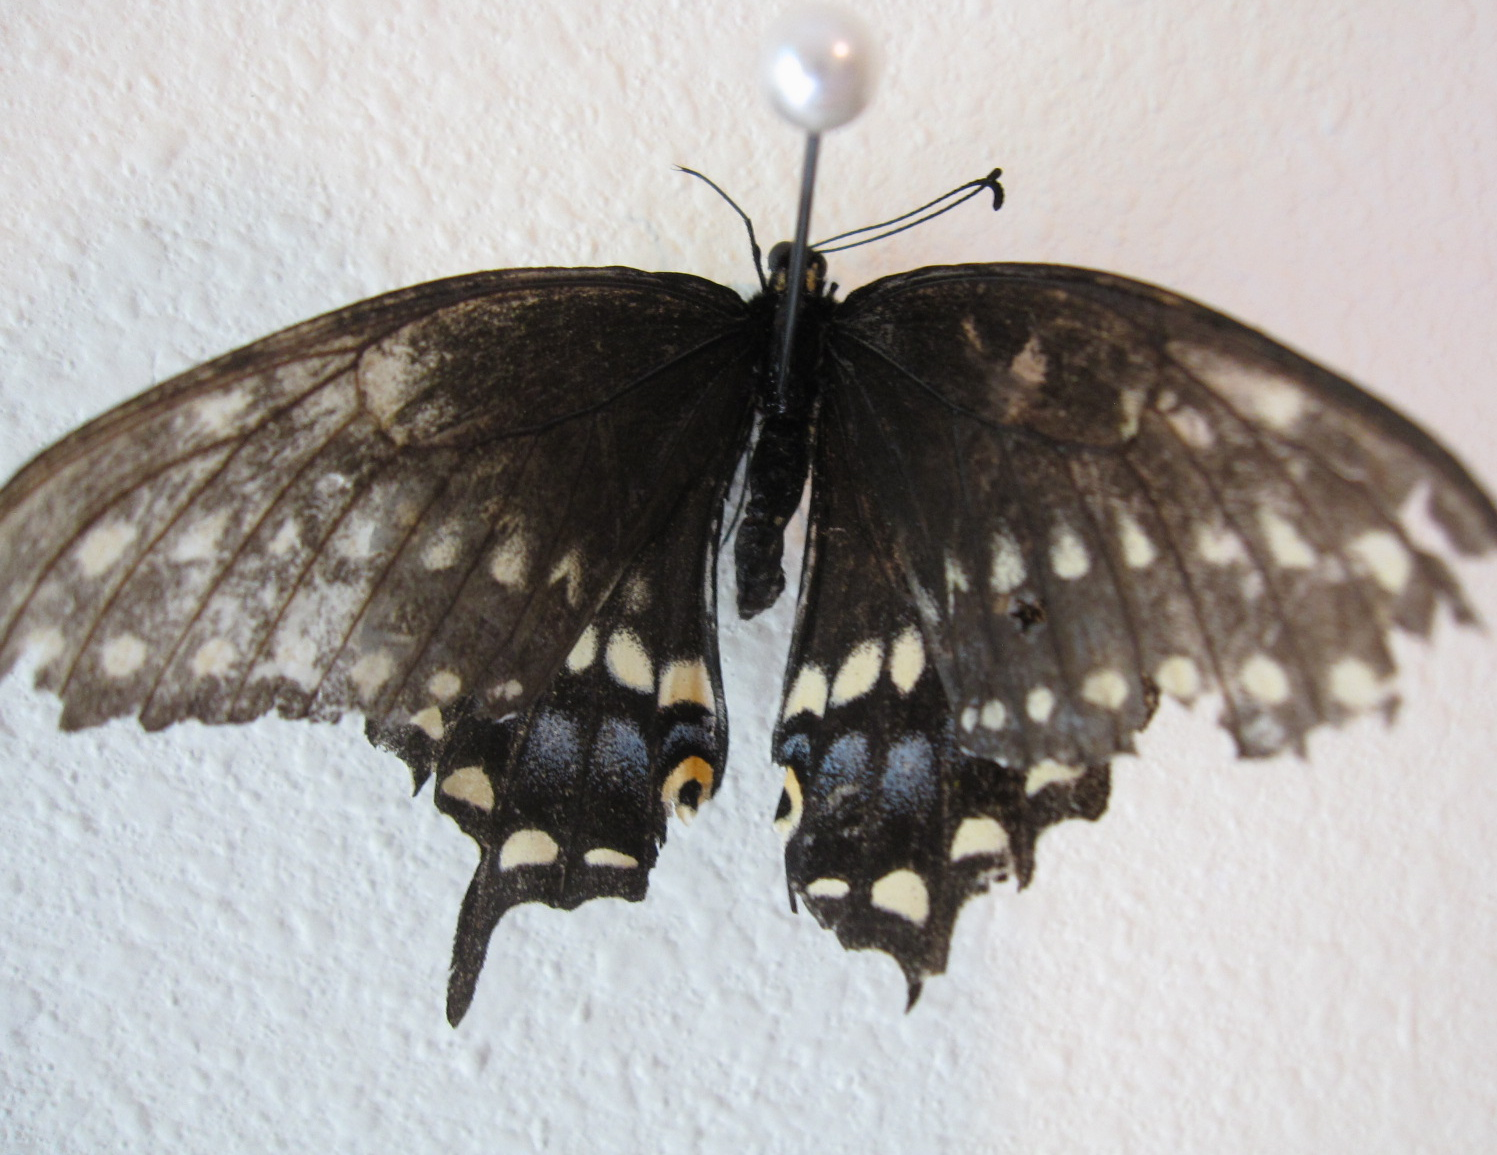 How to Find and Catch Swallowtail Butterflies How to Find and Catch Swallowtail Butterflies new foto